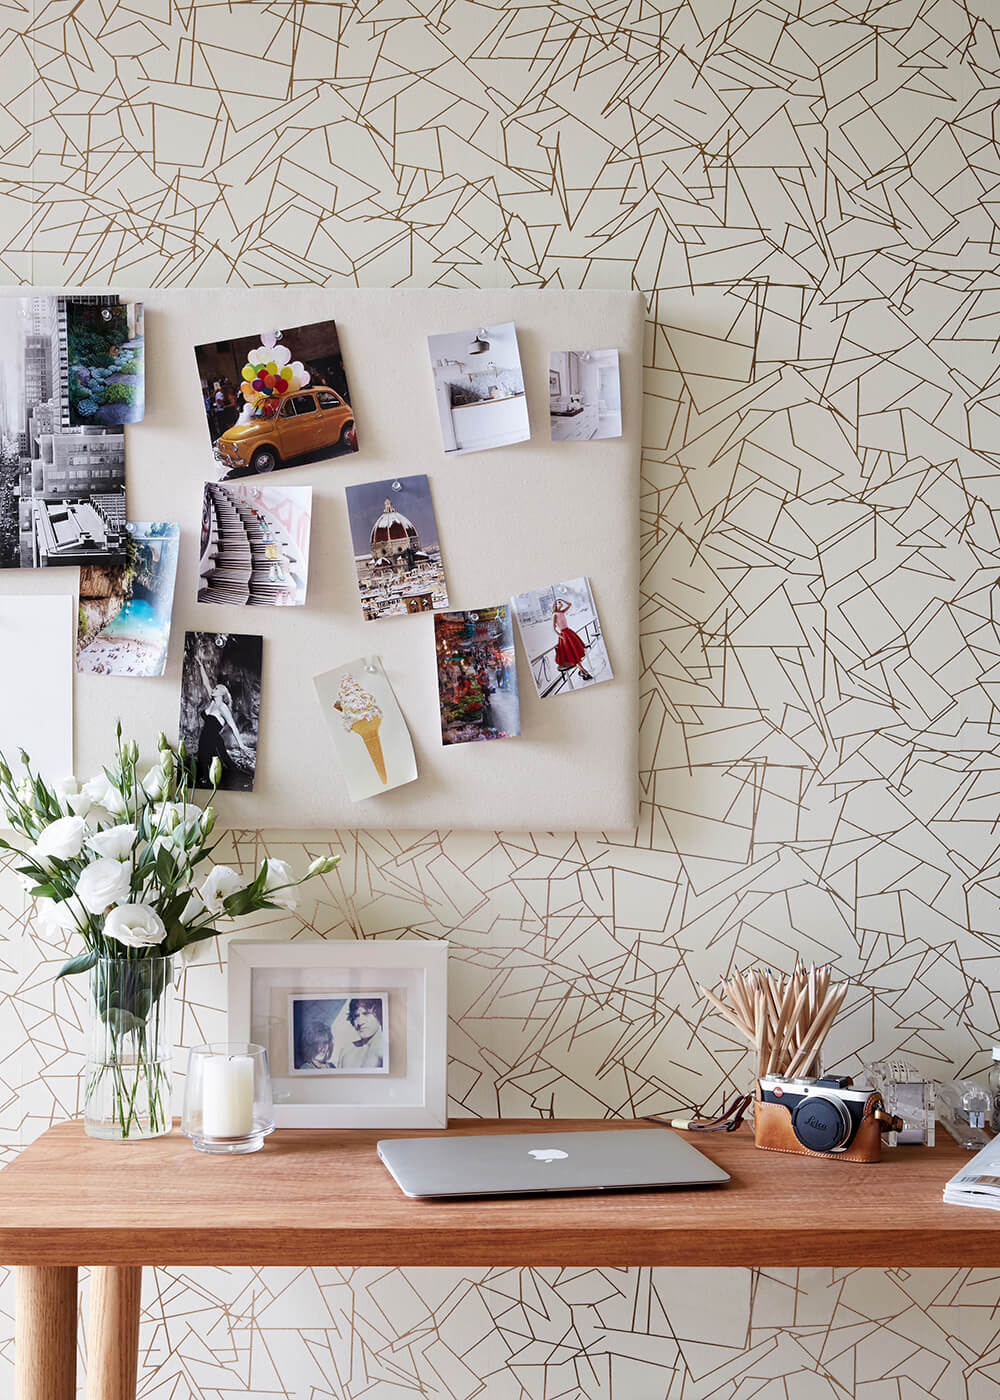 In a home office space, we see a natural wood writing desk standing against another textural feature wall.